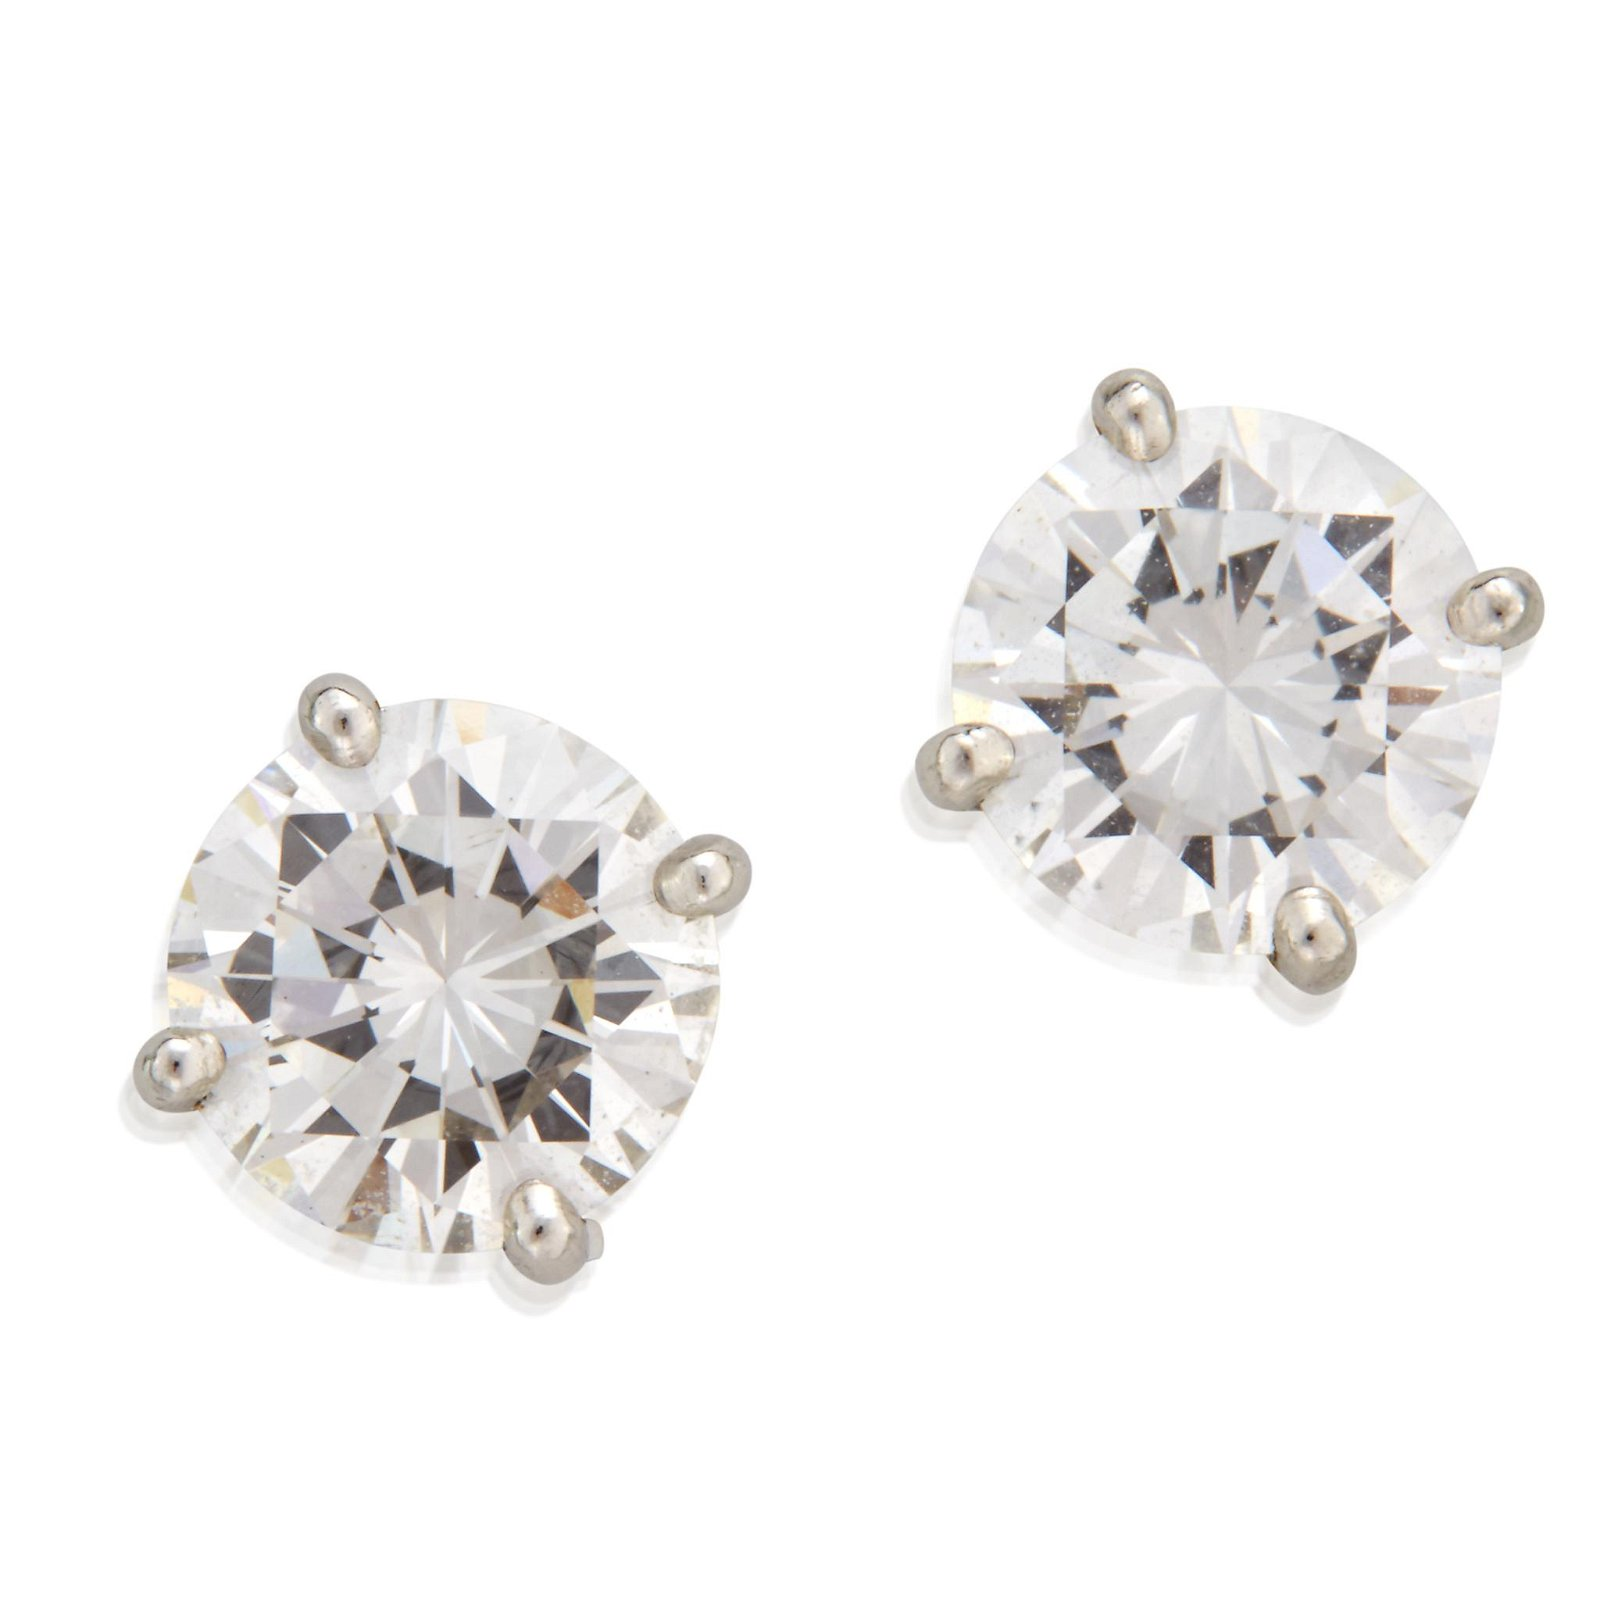 A pair of diamond and fourteen karat gold earrings,